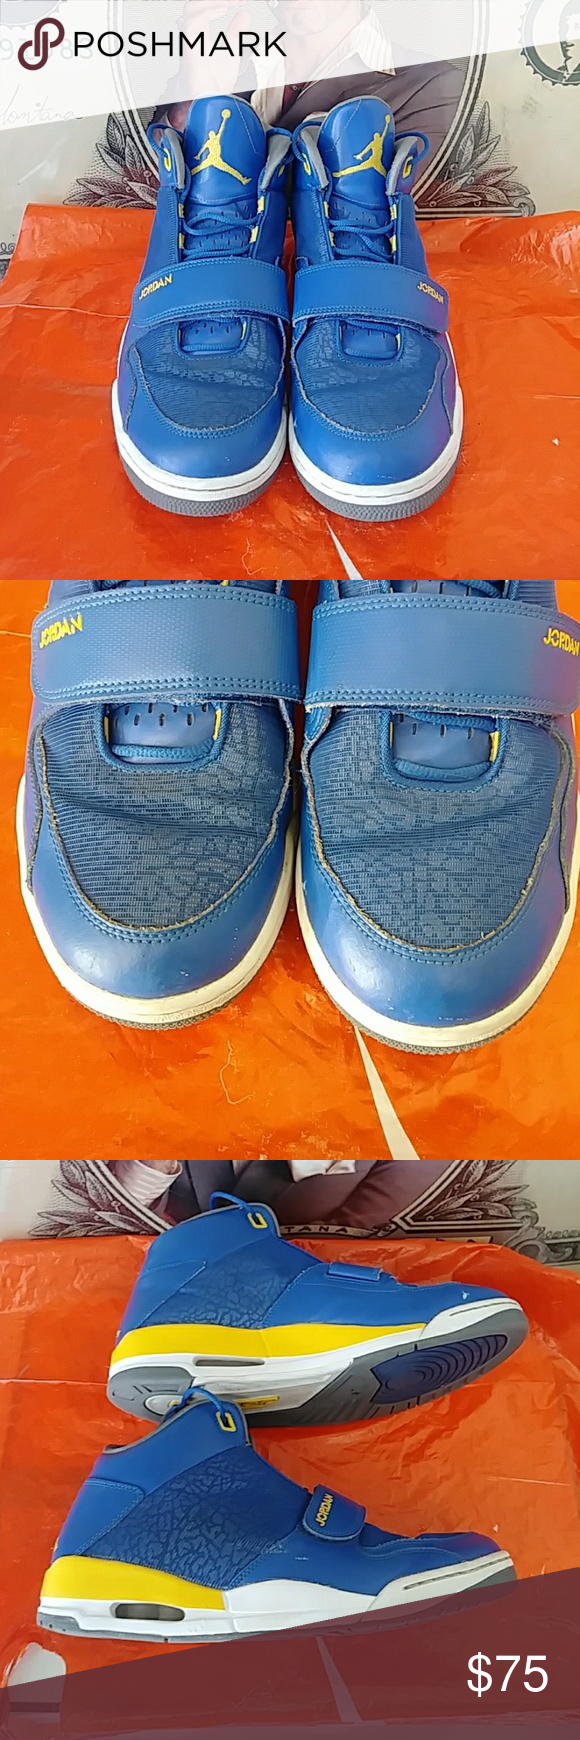 3648726c312 Nike Air Jordan Flightclub 90's In great used condition no tears or holes Golden  State Warriors SZ 10.5 ( 602661-489 ) Jordan Shoes Sneakers